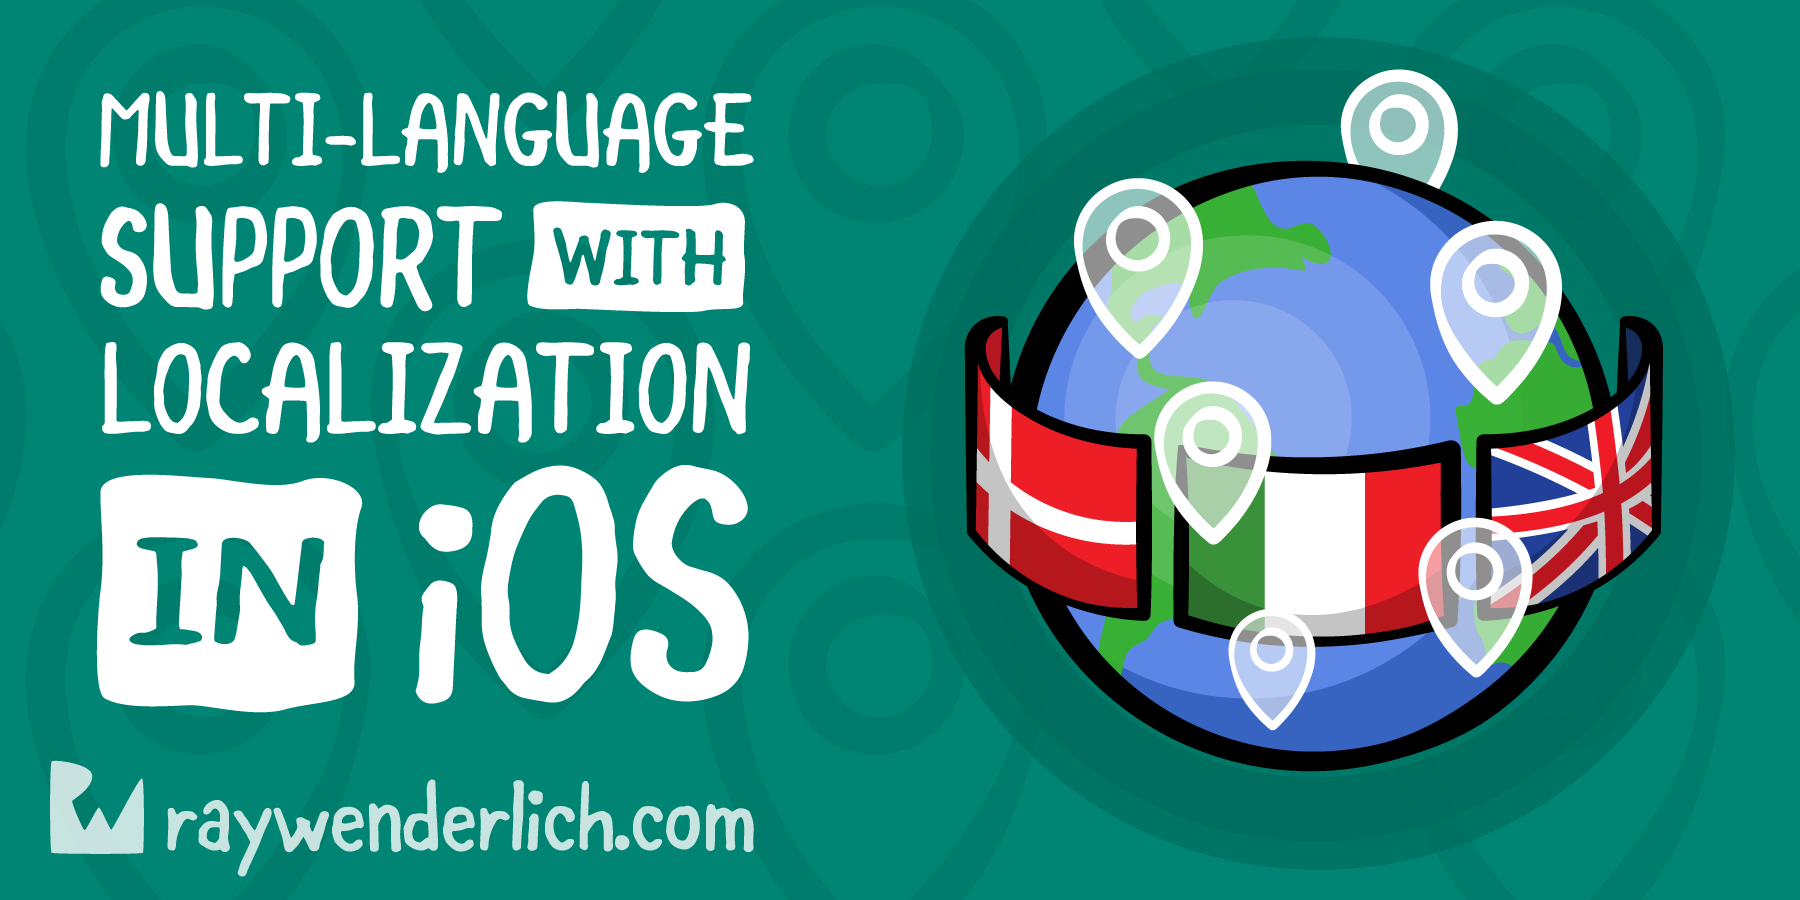 Multi-Language Support with Localization in iOS [SUBSCRIBER]